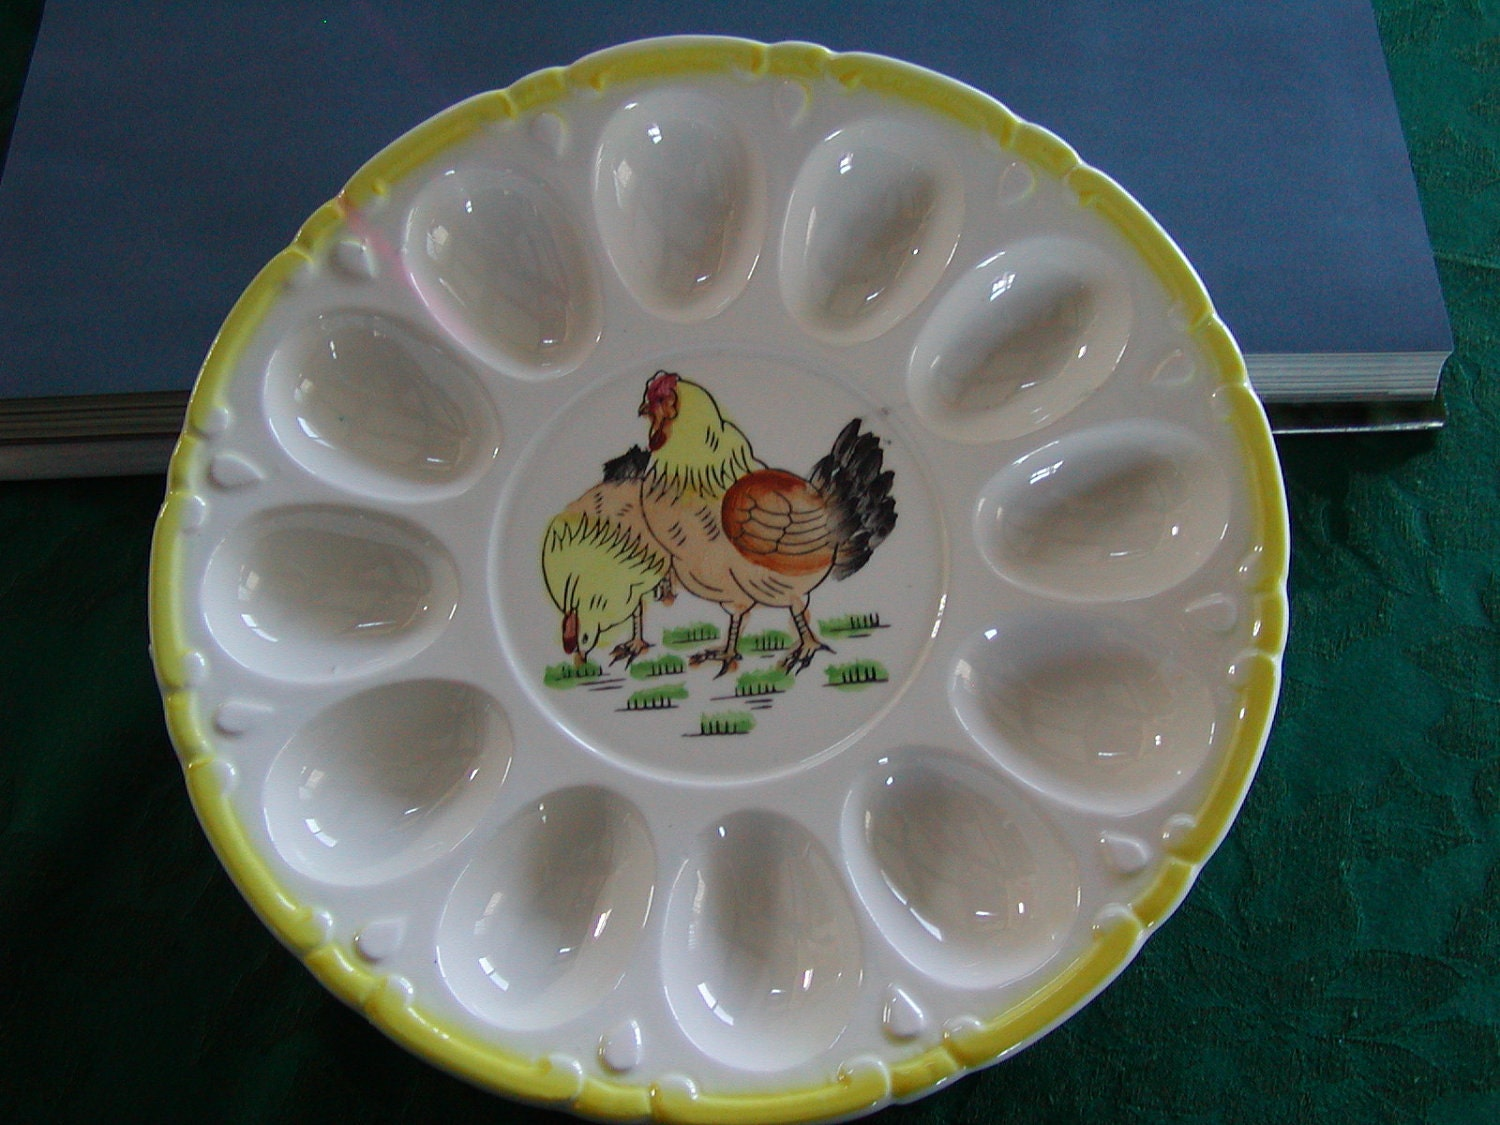 Vintage Deviled Egg Dish Plate Ceramic With Hand Painted Hens